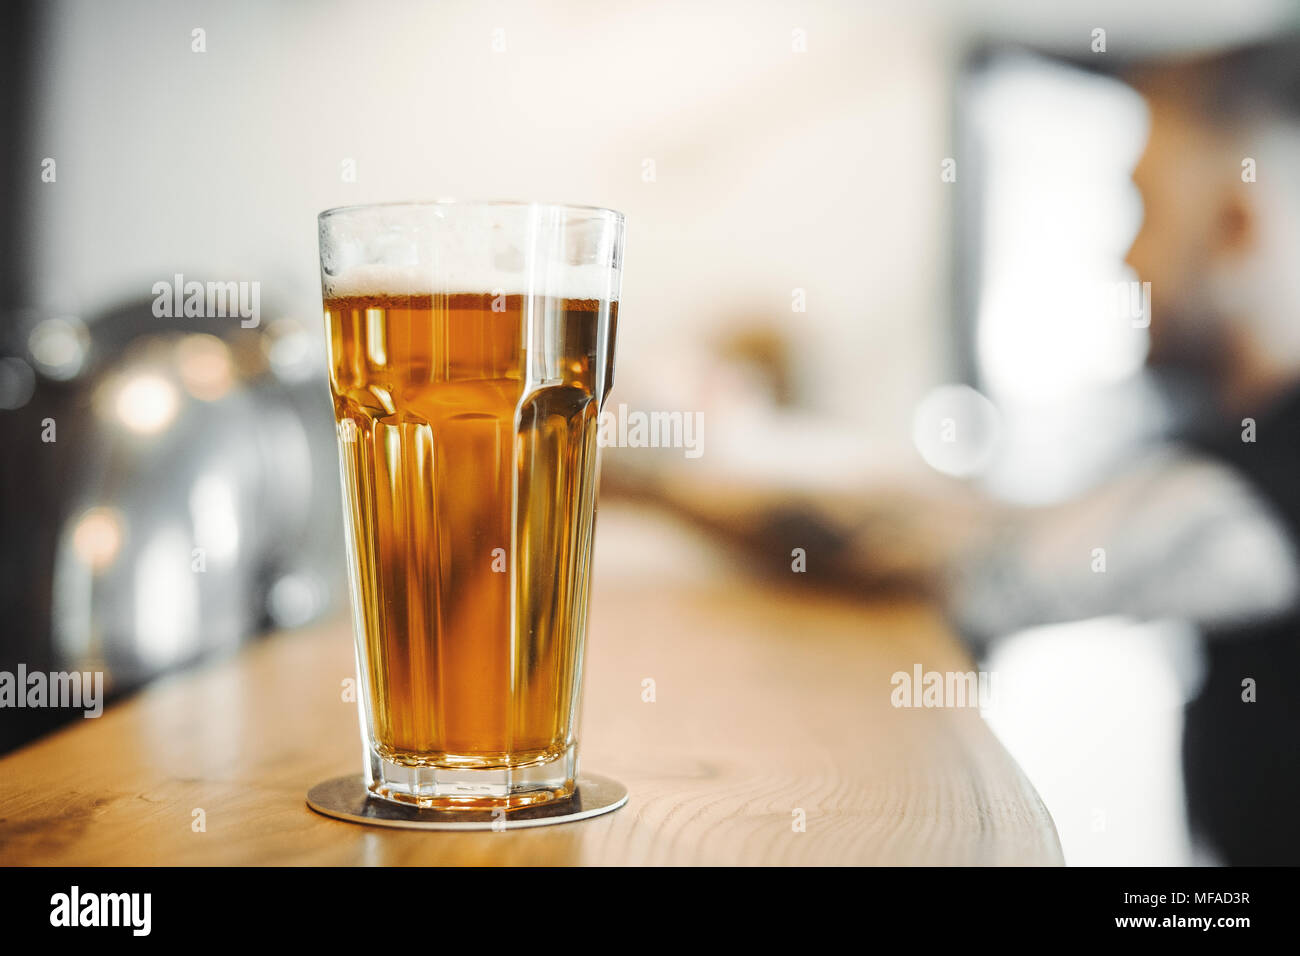 Beer glass stands on bar counter. - Stock Image